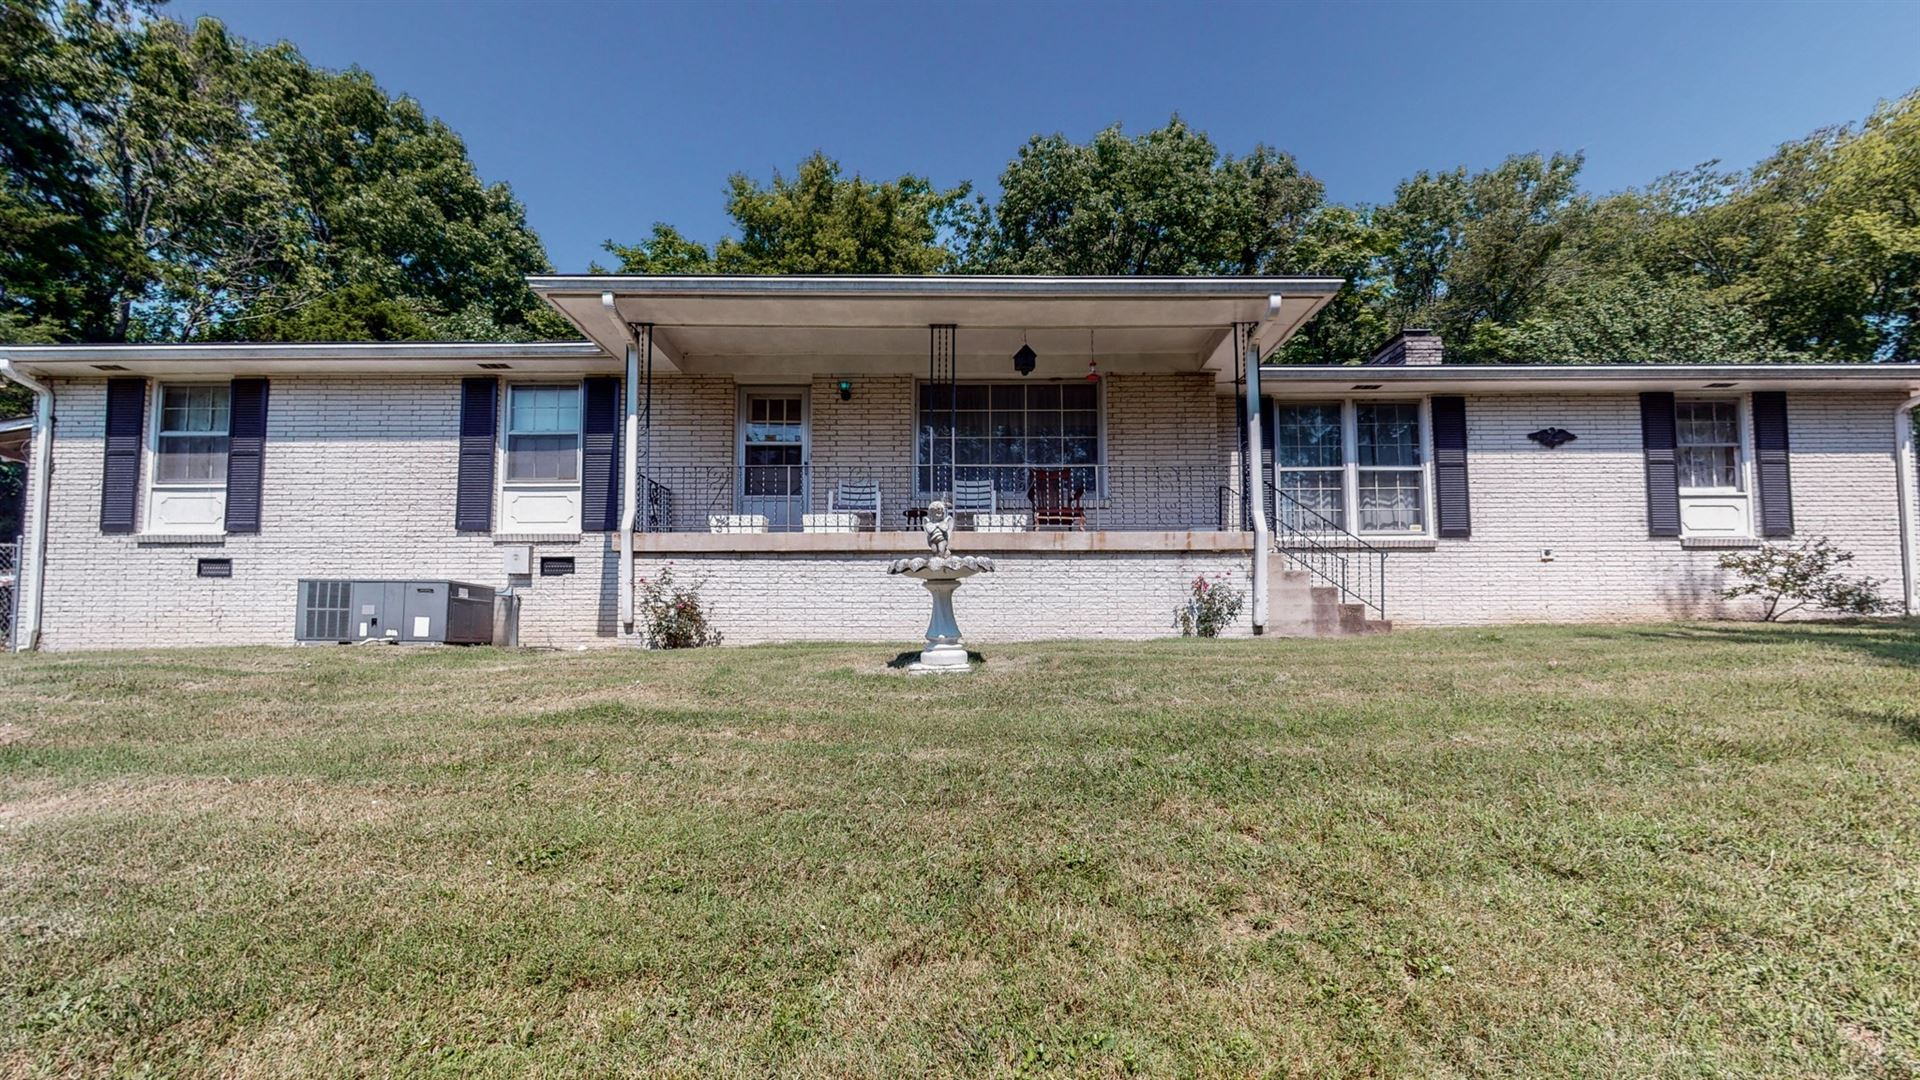 1060 Due West Ave N, Madison, TN 37115 - MLS#: 2207199